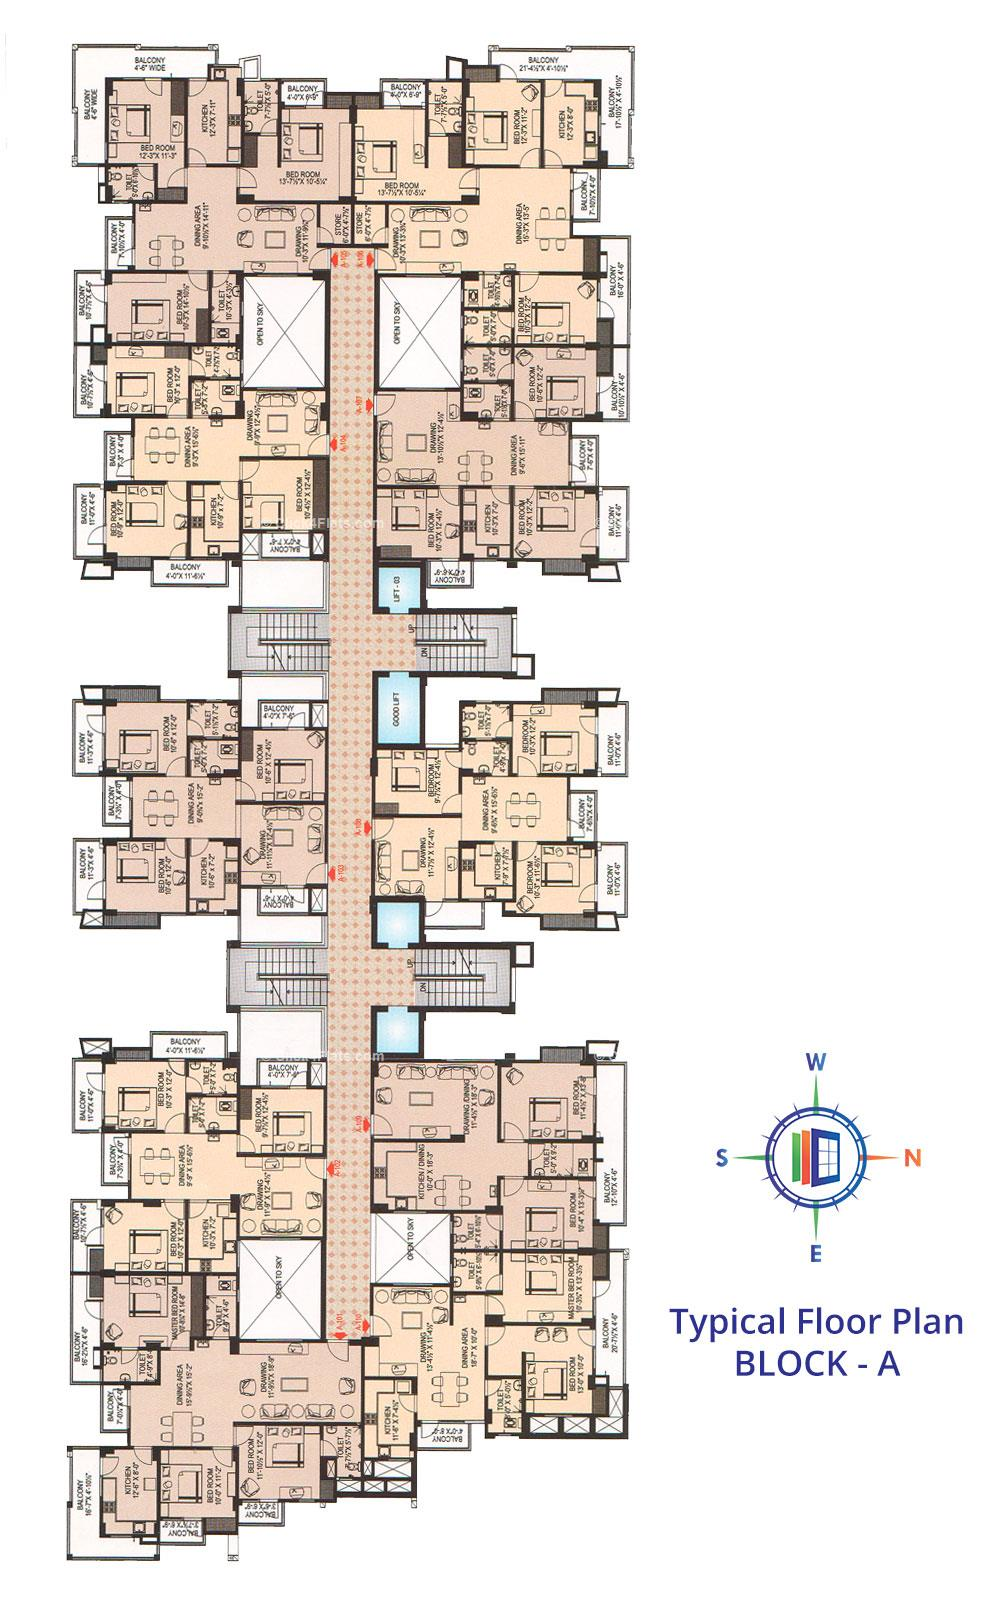 Tirupati Nilay Typical Floor Plan (Block A)